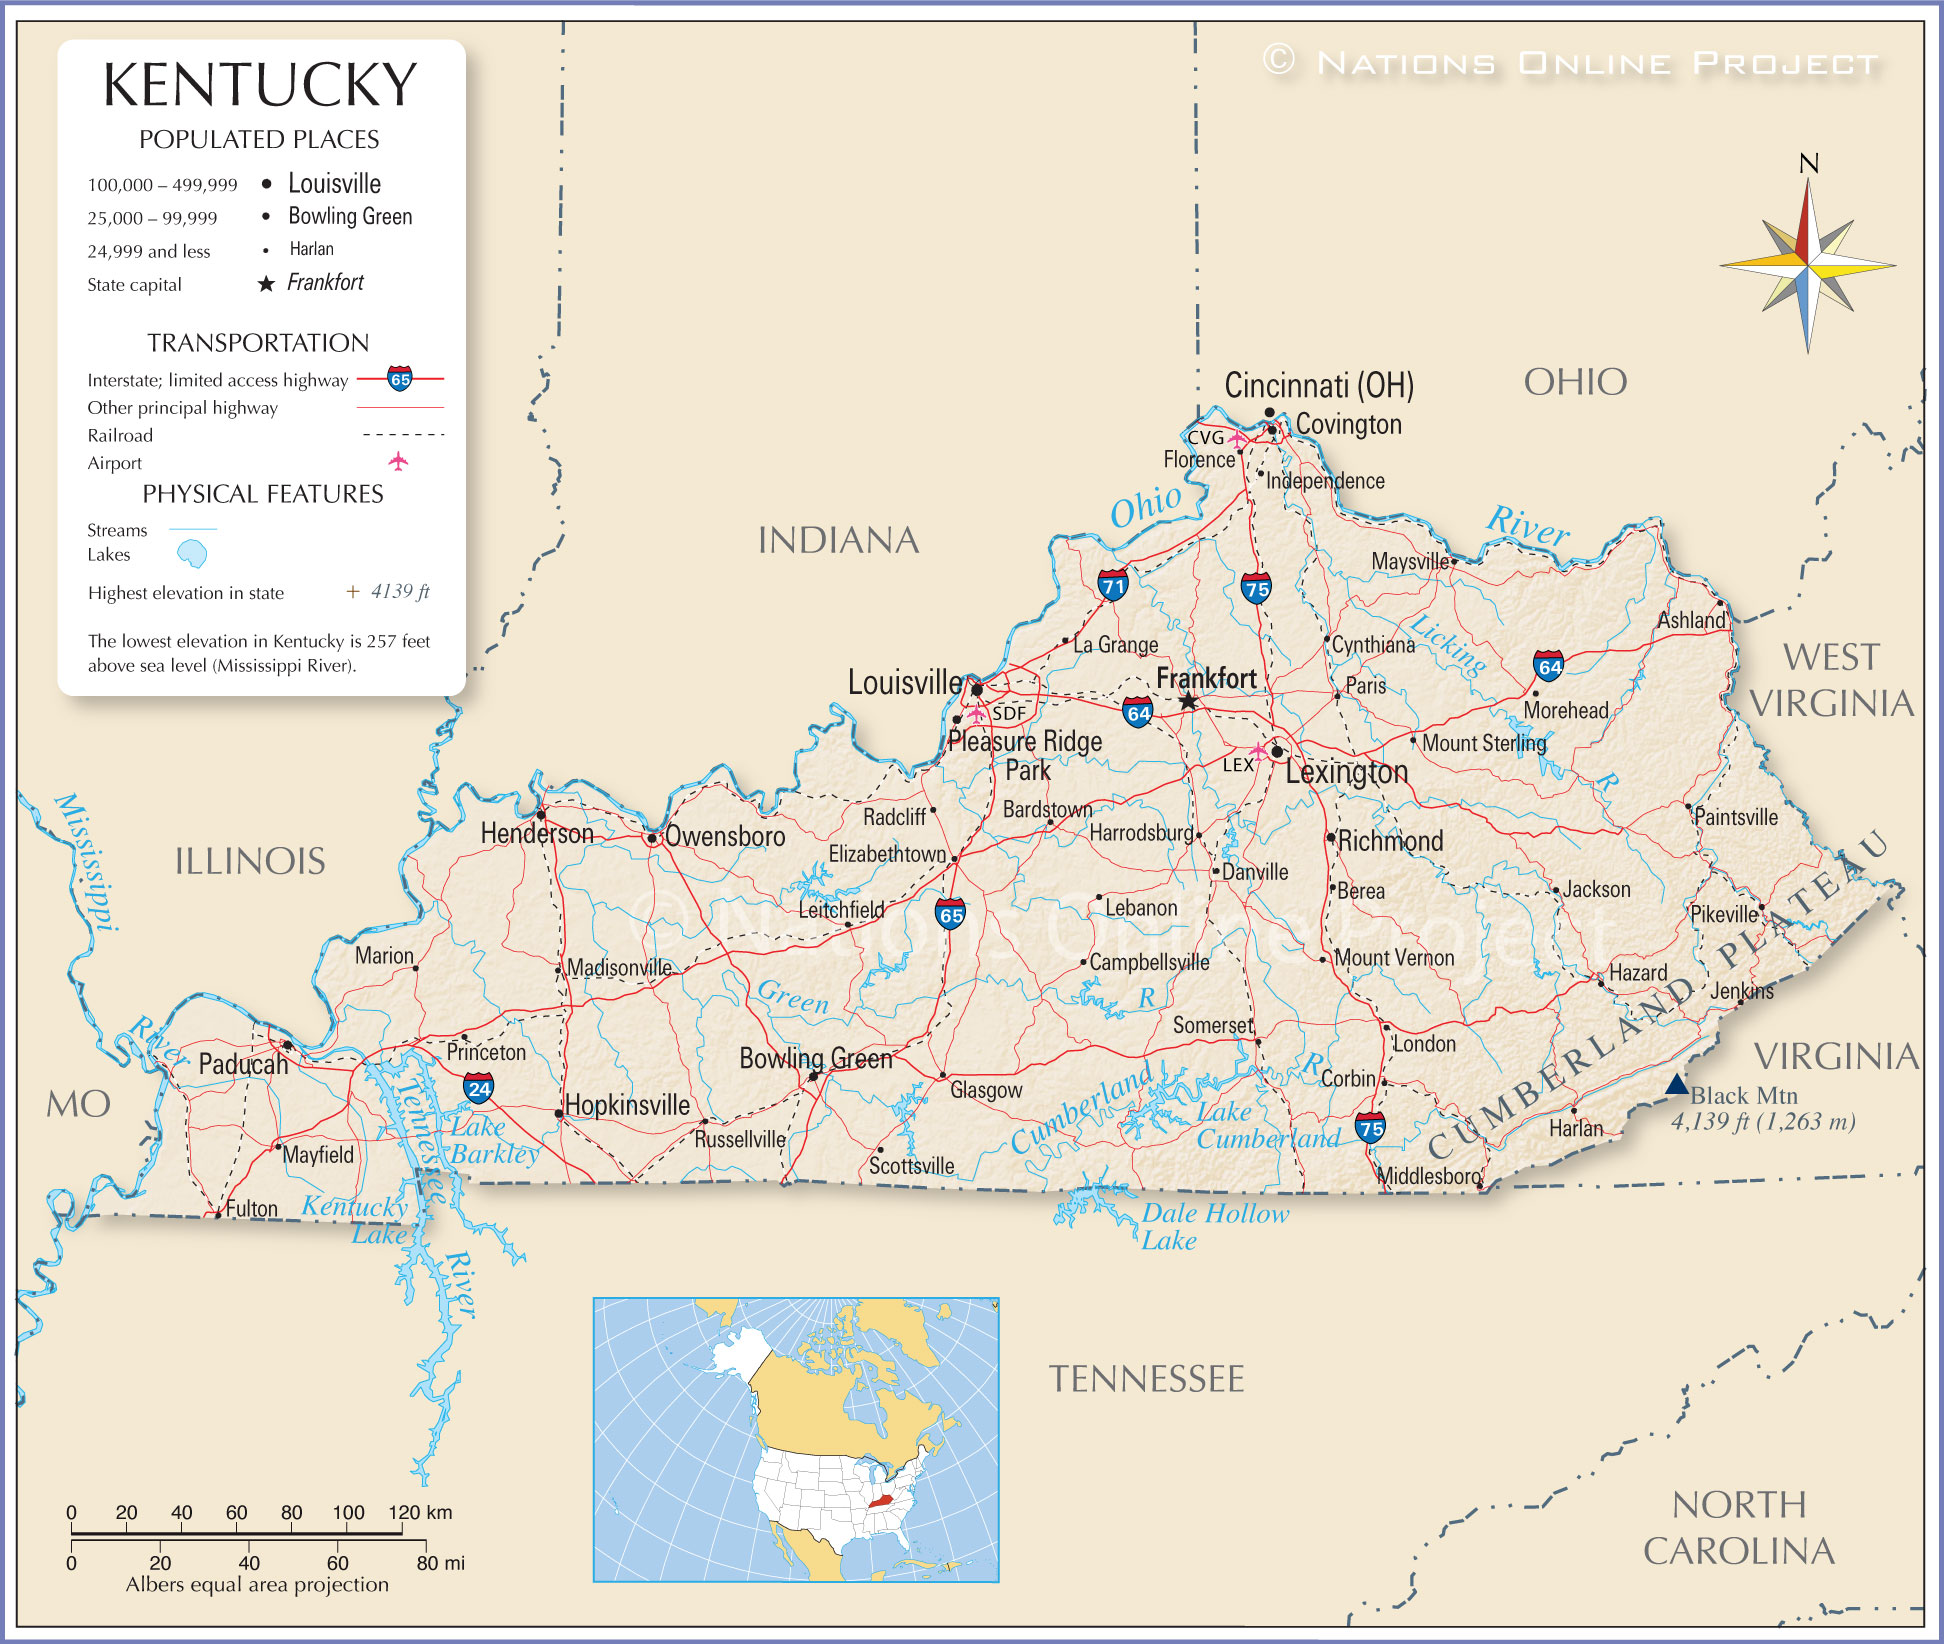 Reference Map Of Kentucky USA Nations Online Project - Cities map of kentucky